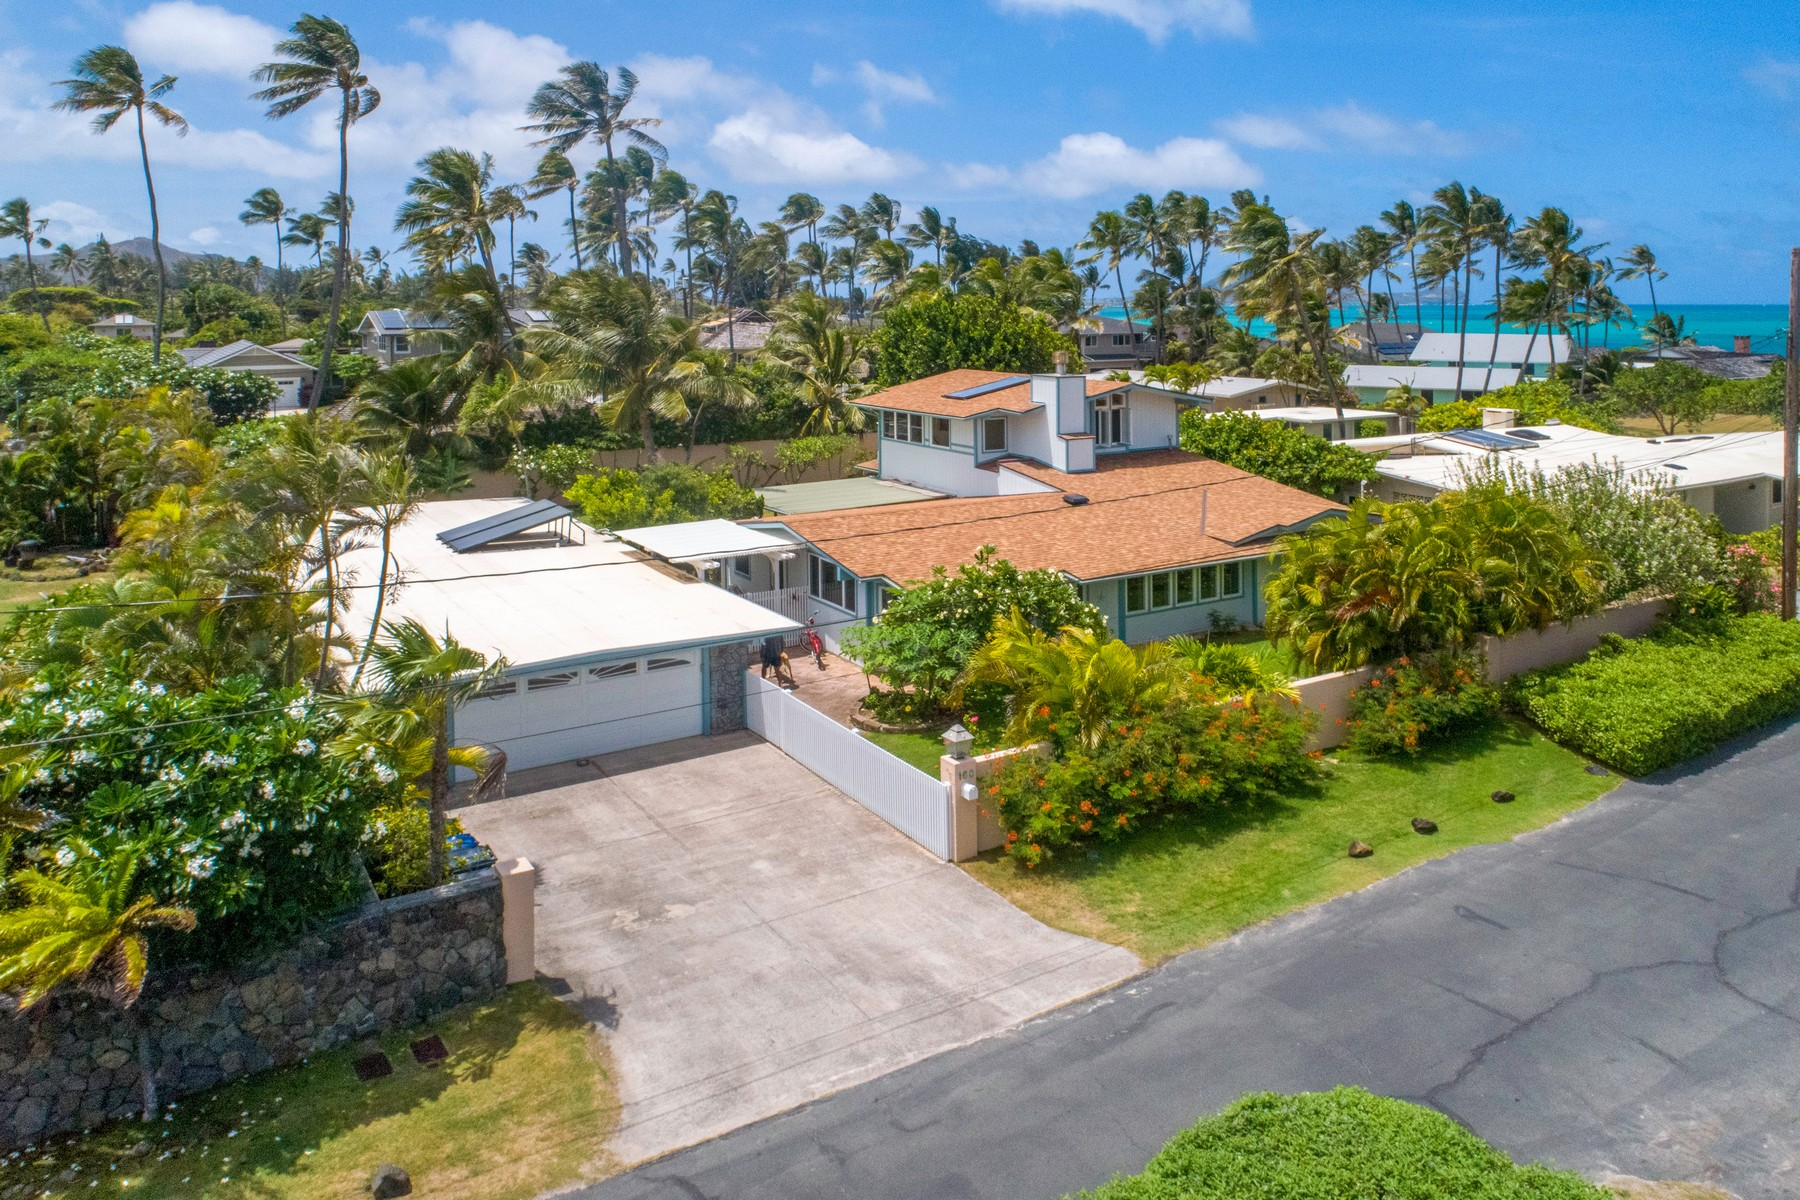 Single Family Home for Active at Beautiful Beachside Home 160 Kaapuni Dr Kailua, Hawaii 96734 United States